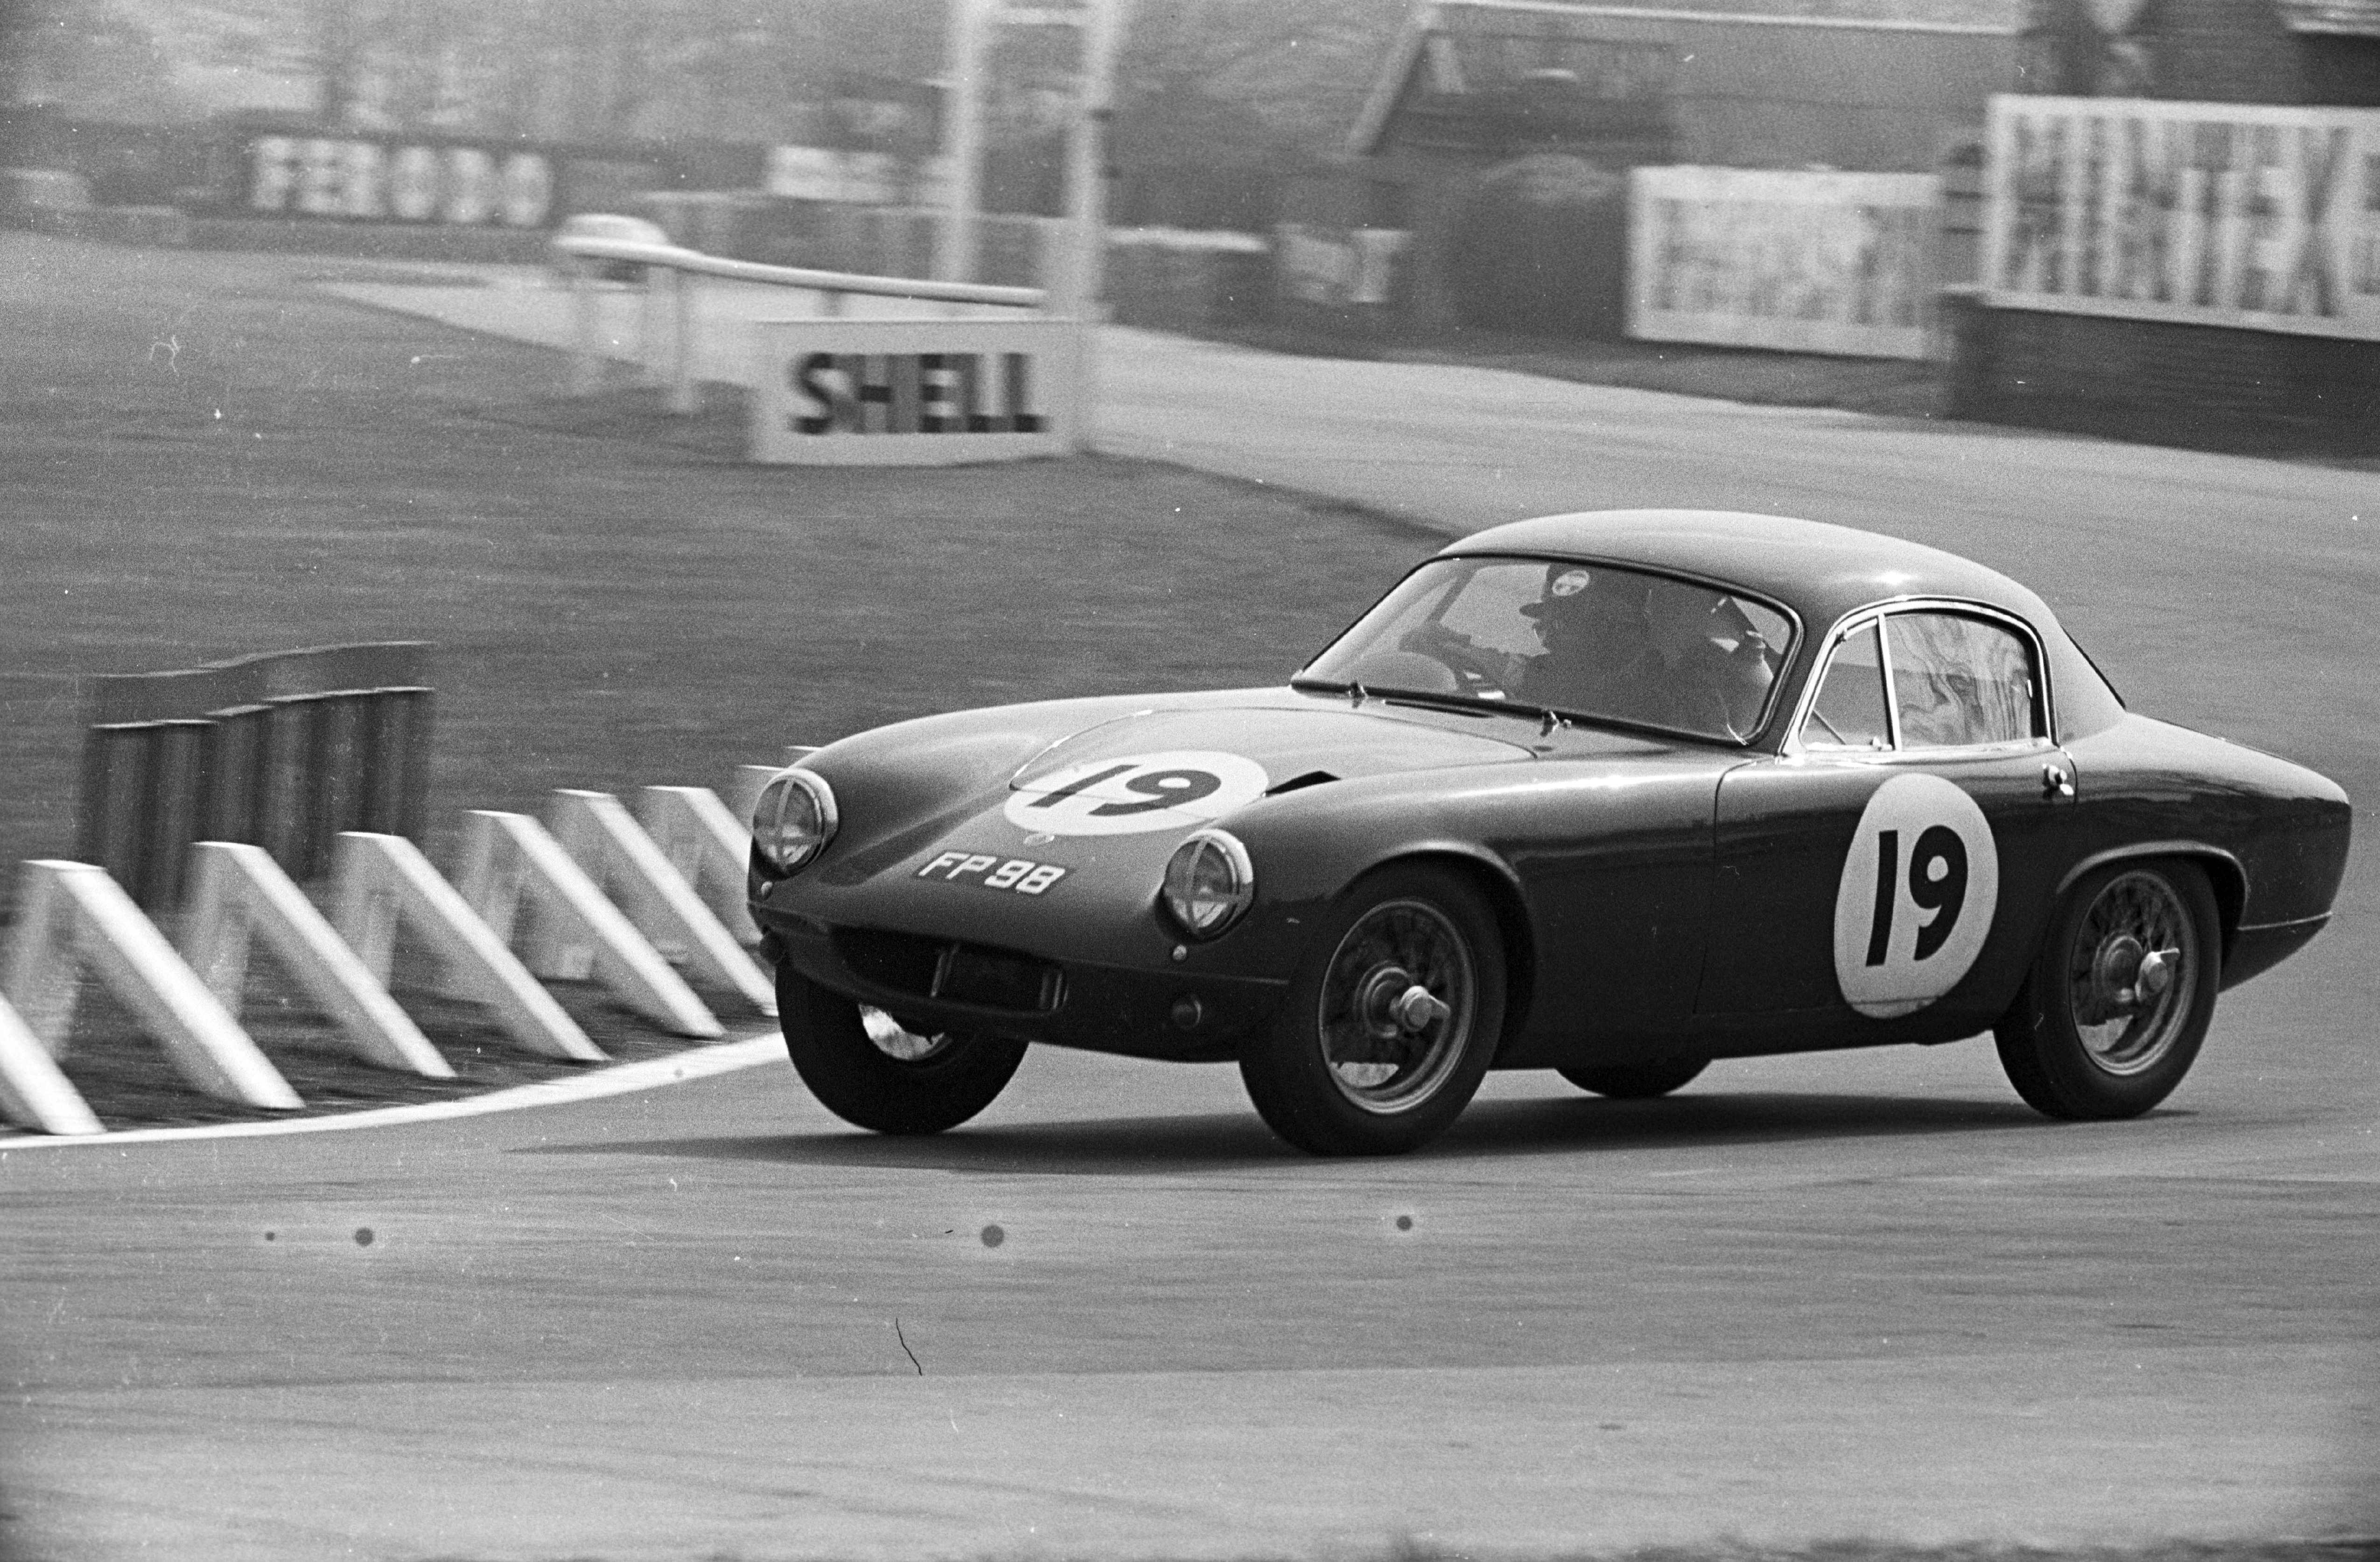 A Lotus Elite racing into Tatt's Corner in the Aintree 200 race, England 30 April 1960. (Photo by: GP Library/UIG via Getty Images)